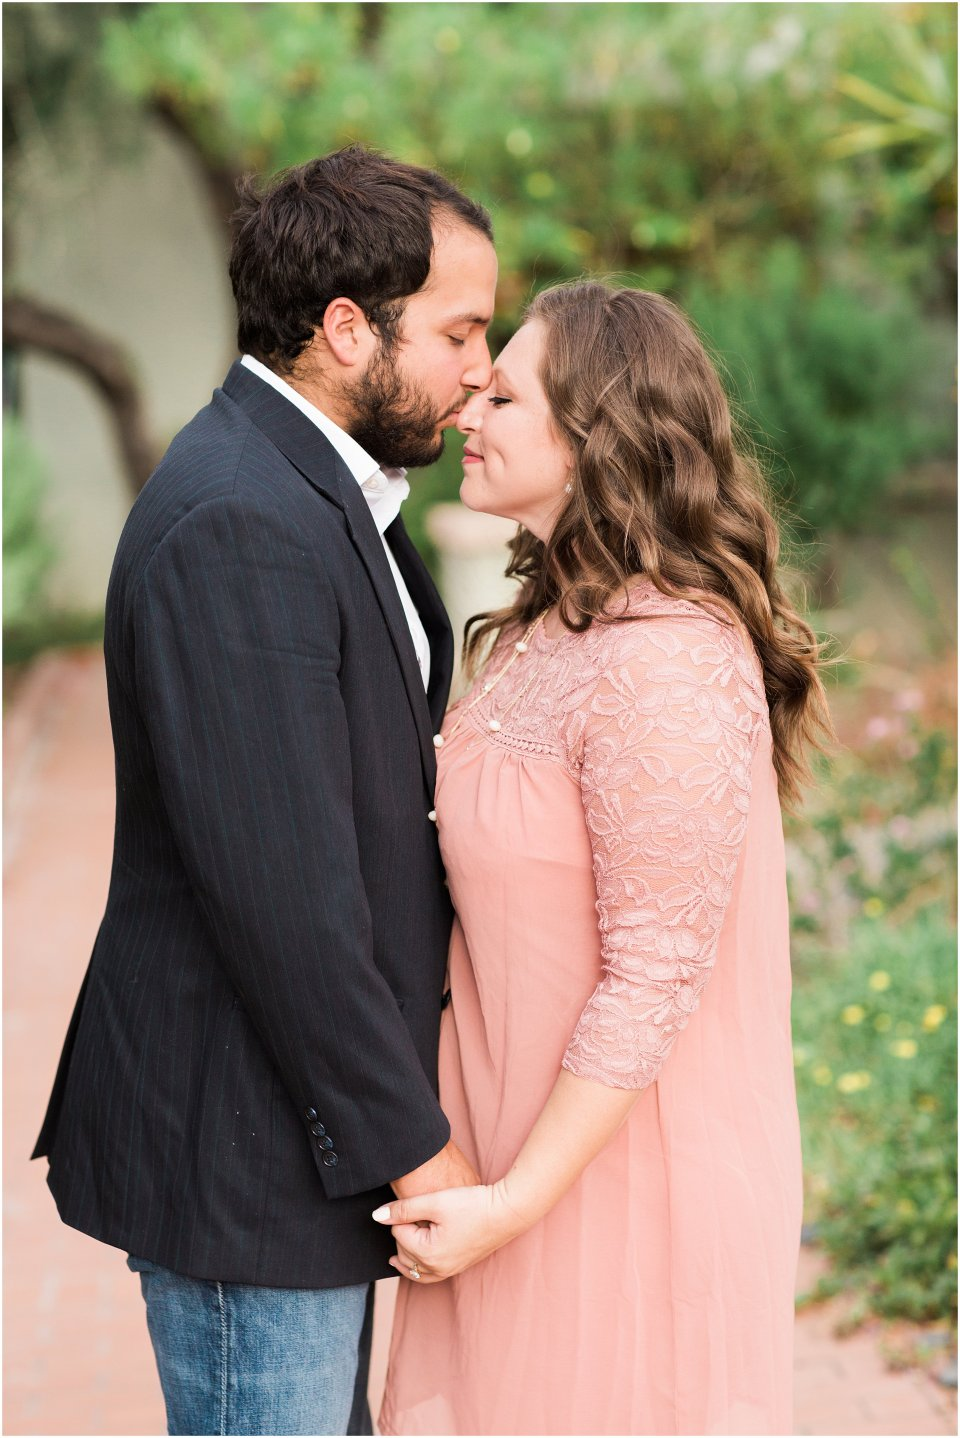 Scottsdale_Engagement_Downtown_Urban_Pink_Dress_Suit_01